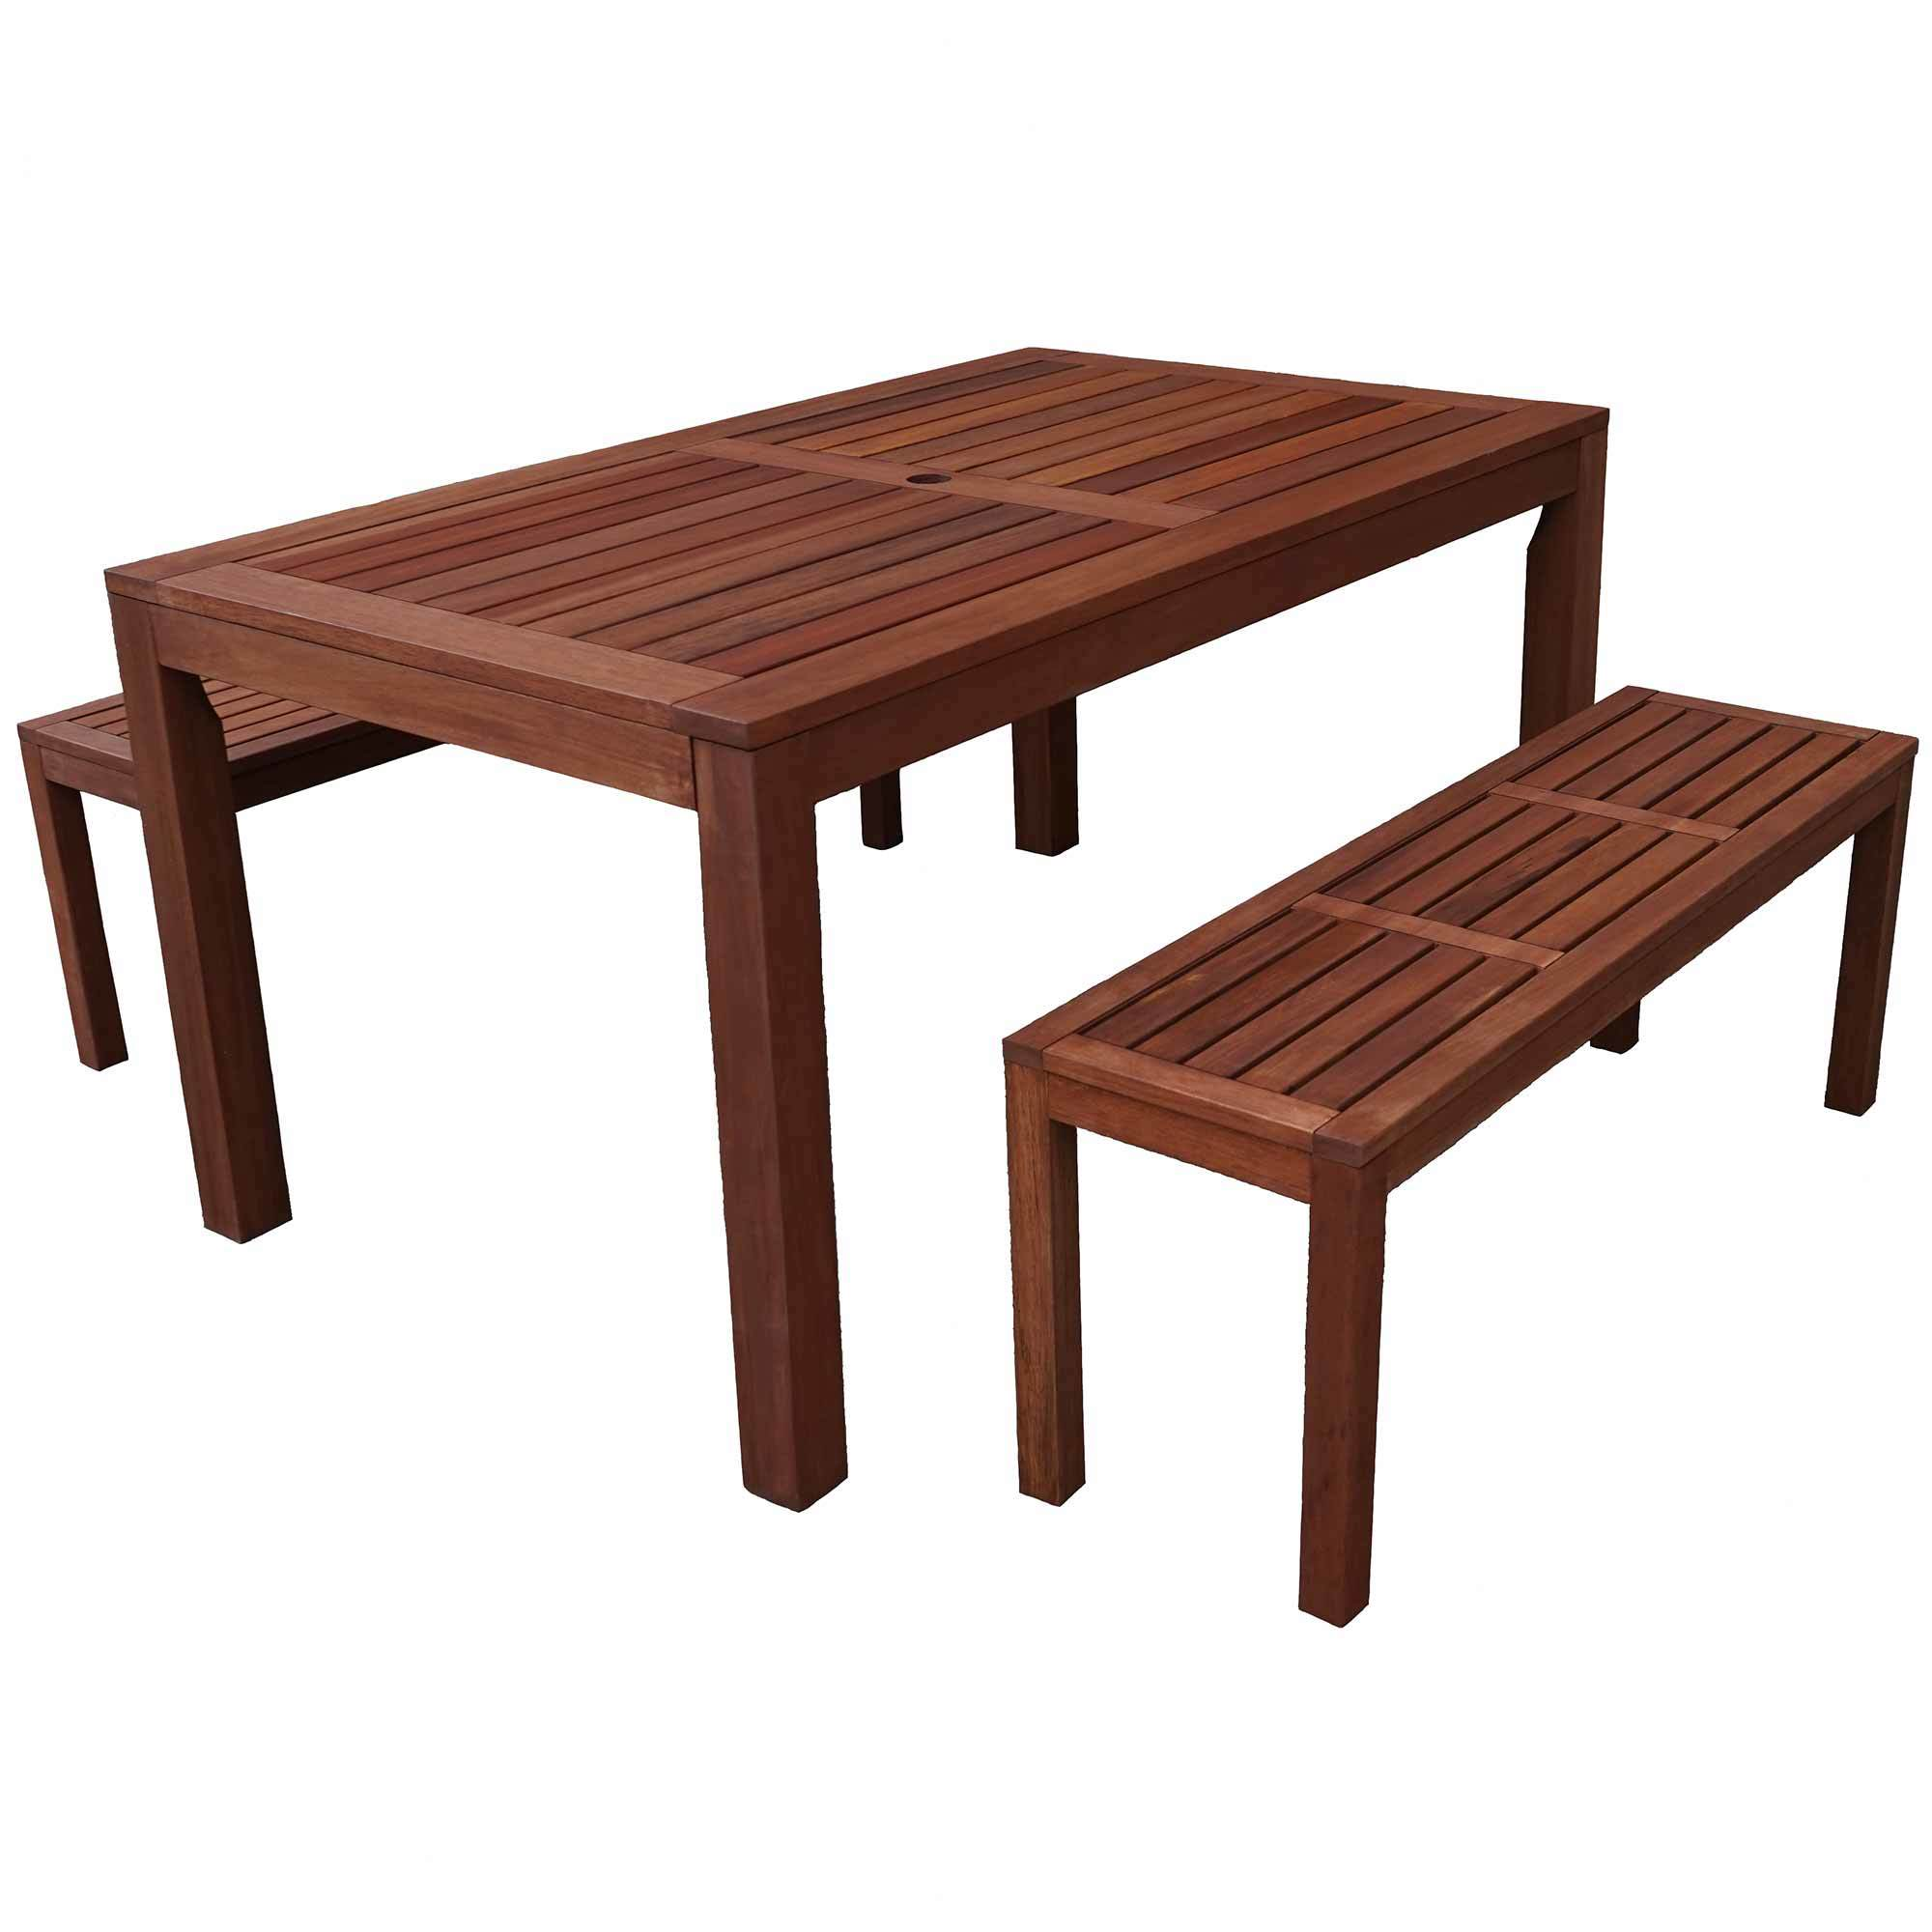 Seater Lisbon Outdoor Dining Table, Timber Outdoor Bench Dining Table Set